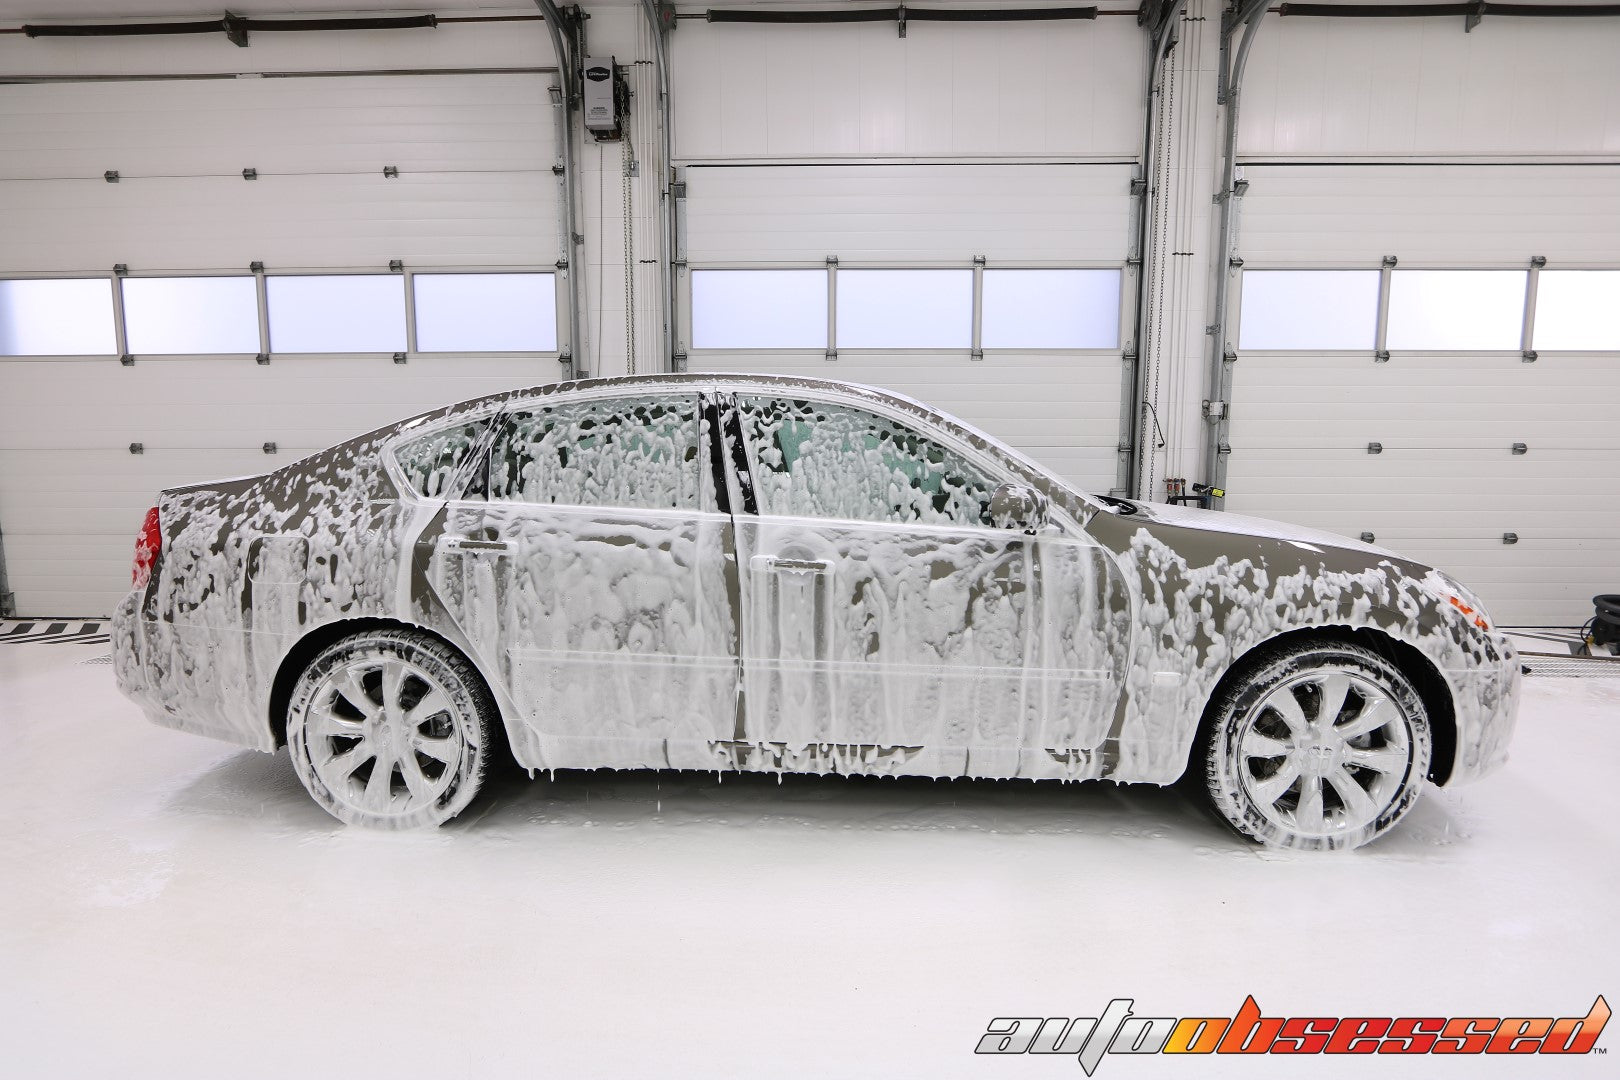 2006 Infinity M35x Foam Cannon Car Wash Soap - Auto Obsessed